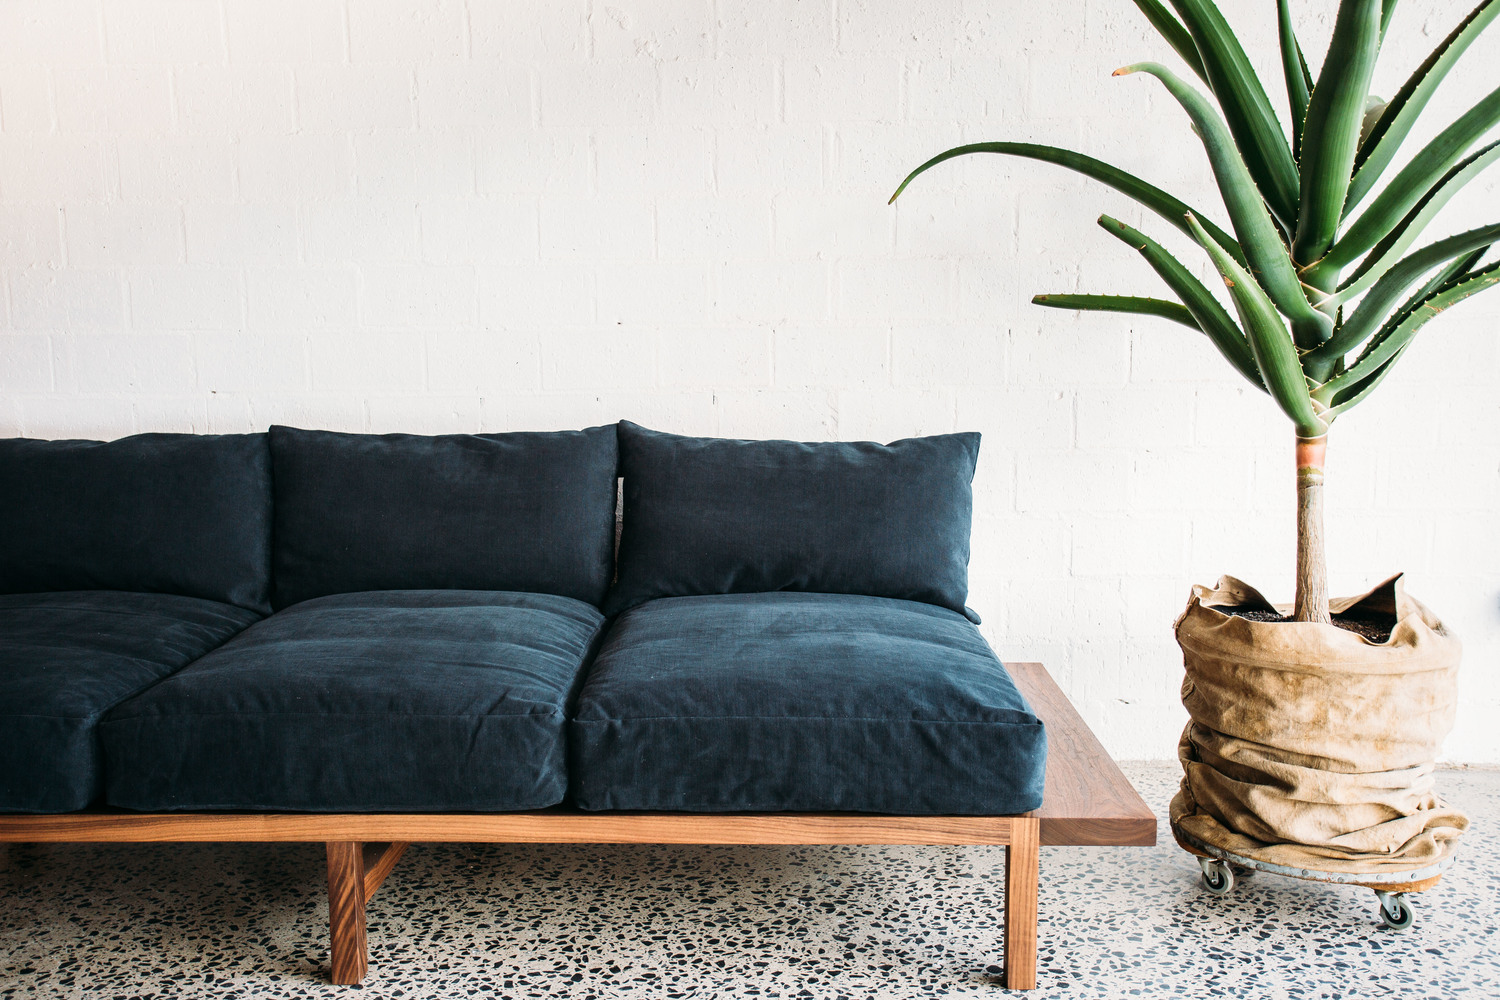 The Finley Sofa - JD.Lee Furniture - Next to a plant